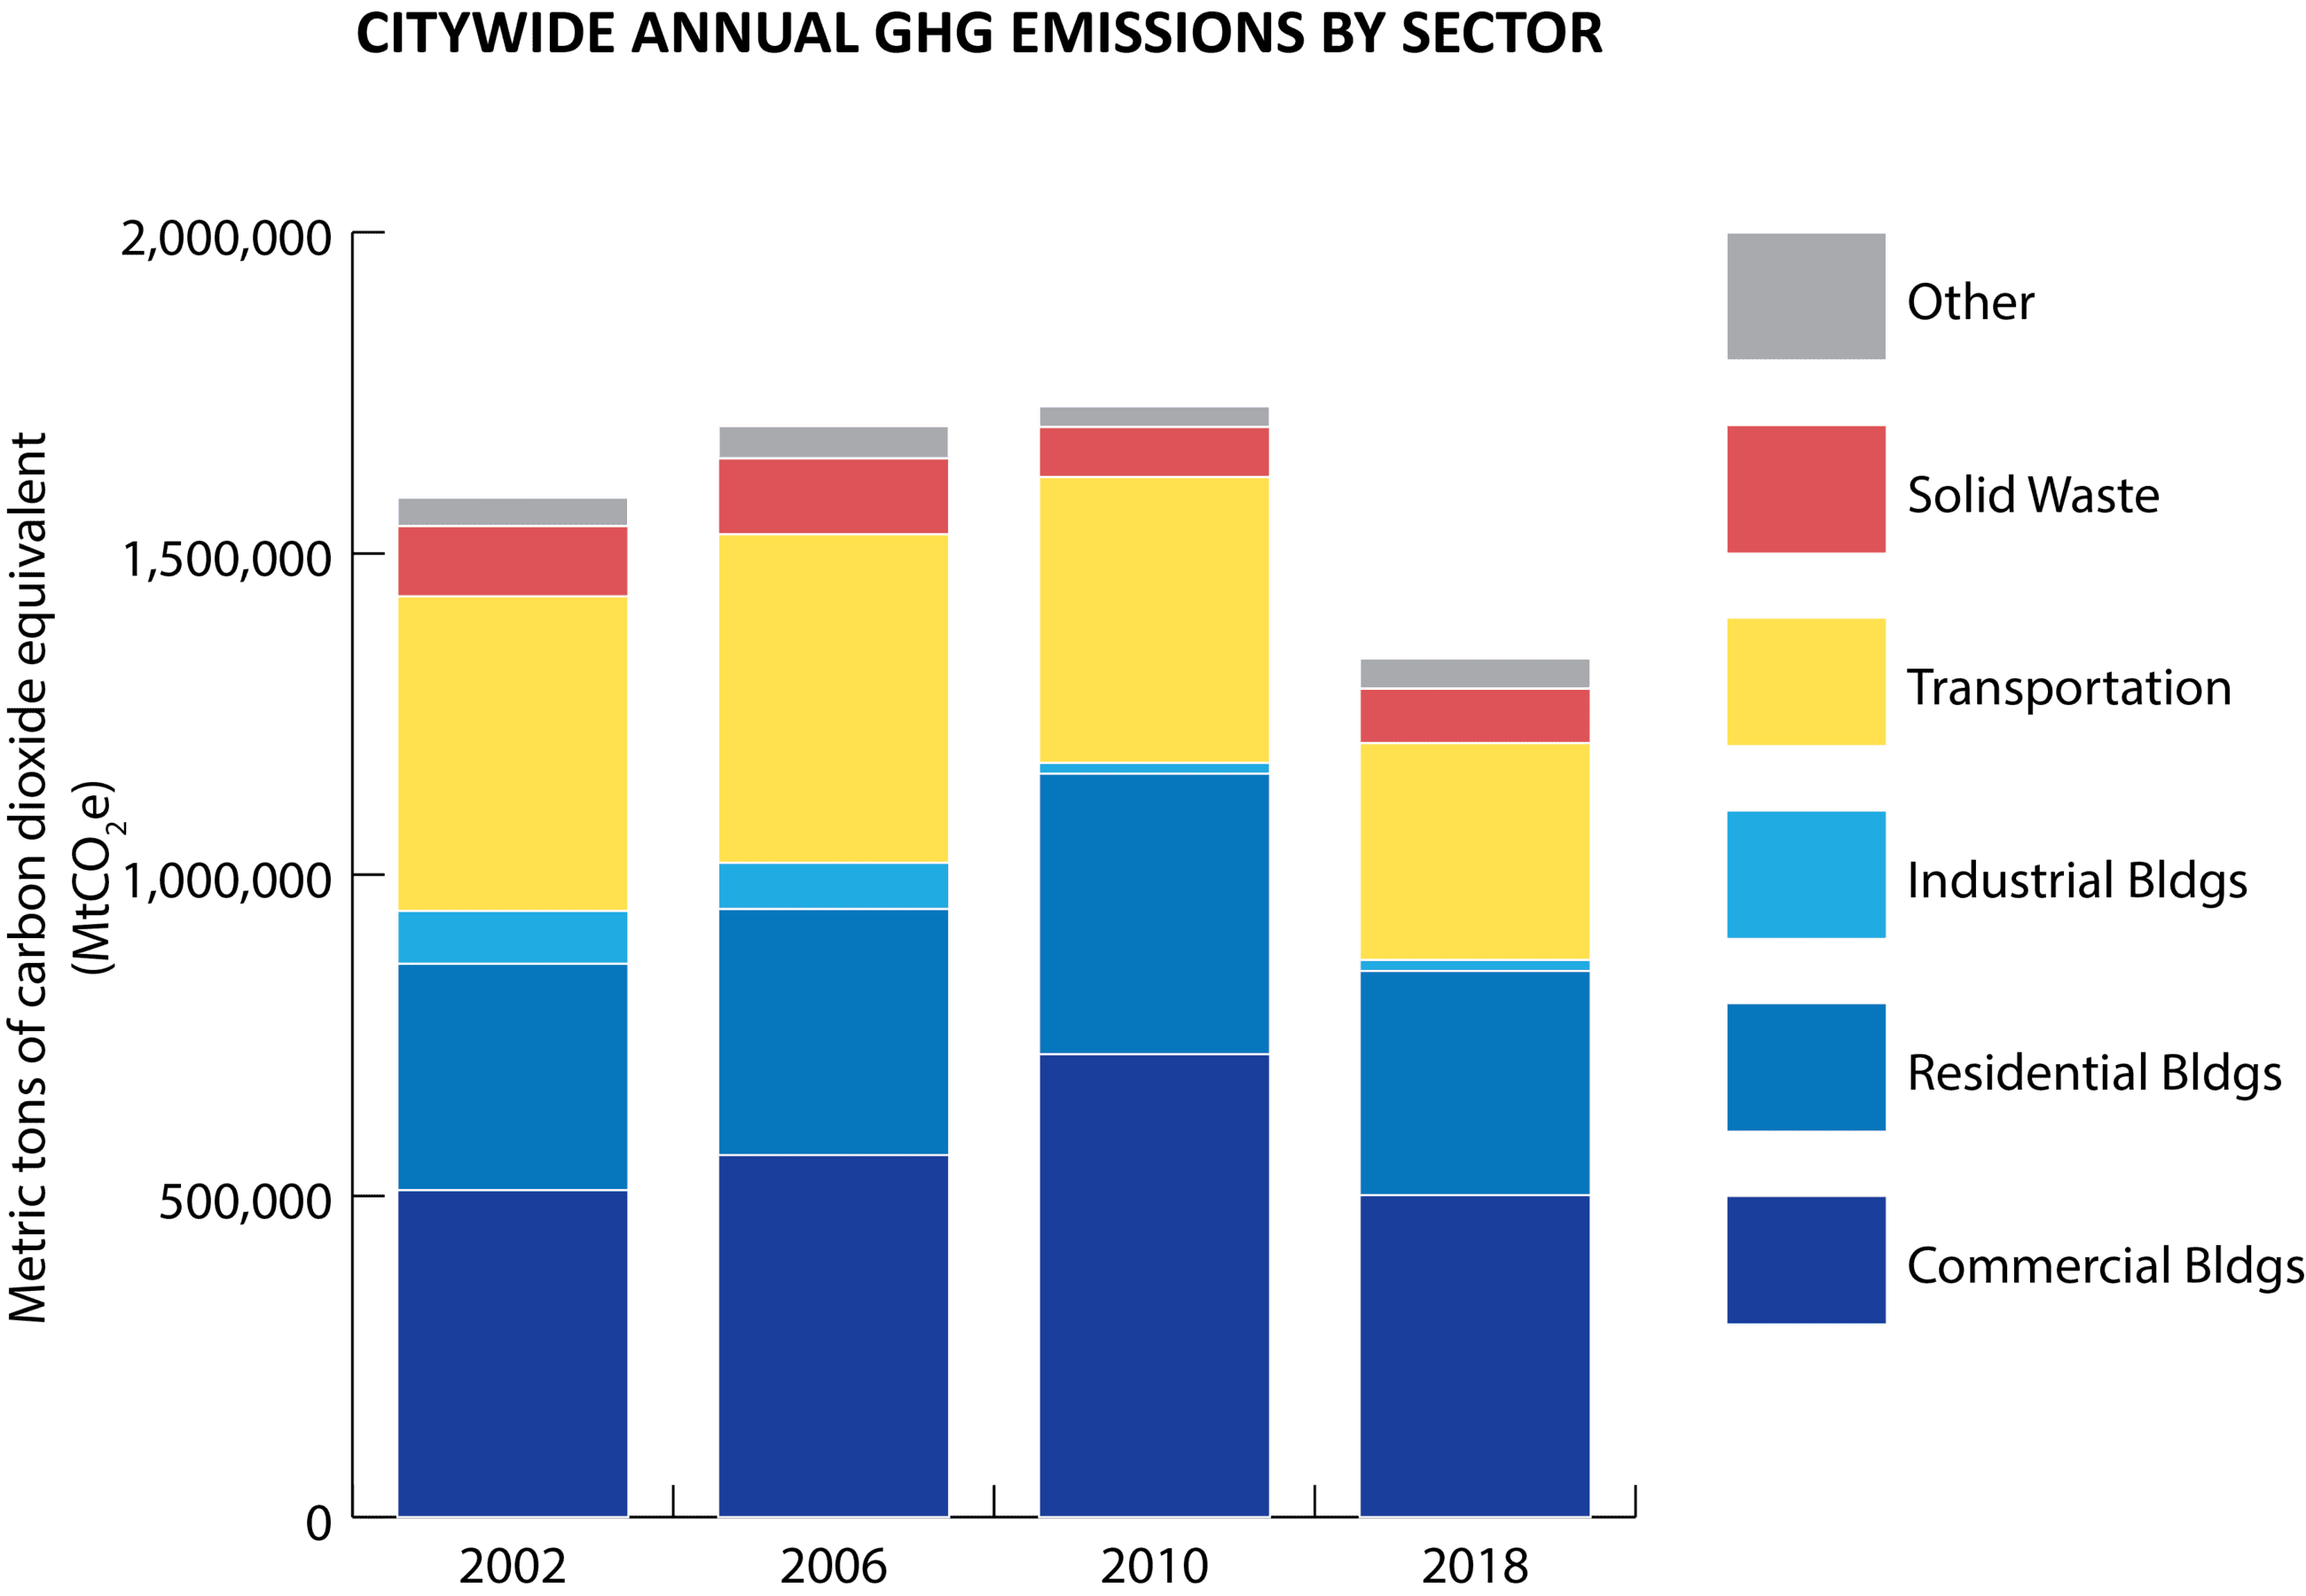 Citywide Annual GHG Emissions by Sector